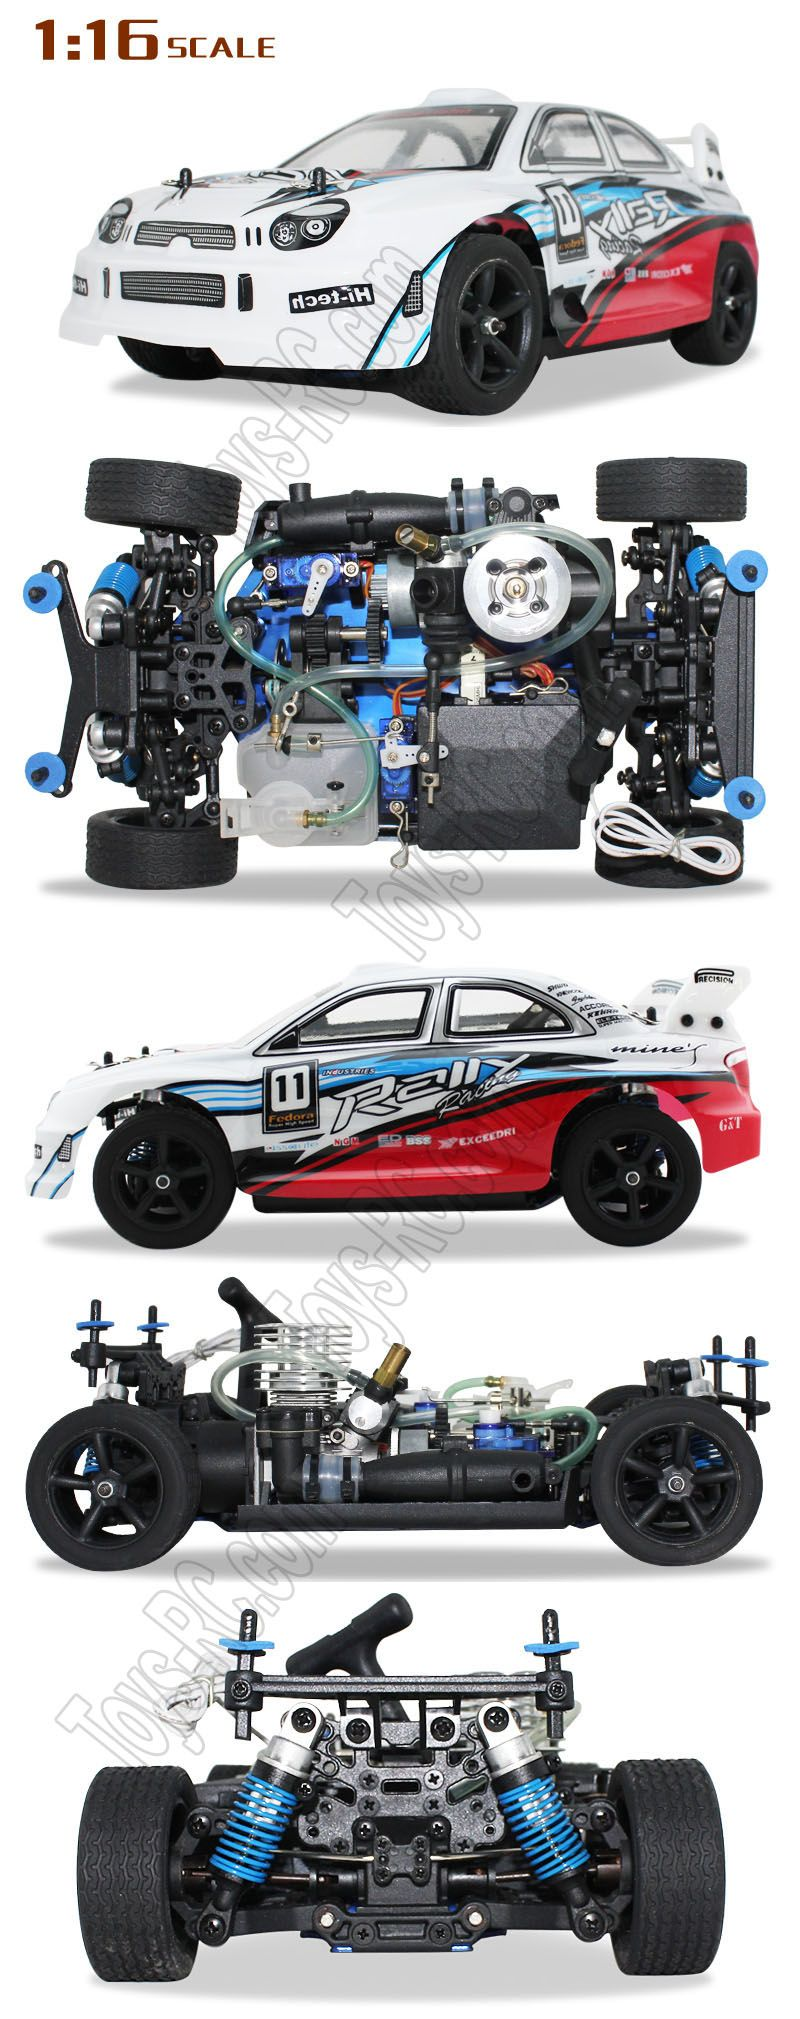 Victory Hawk VHZ16 116 4WD Nitro RC Gas Racing Car http